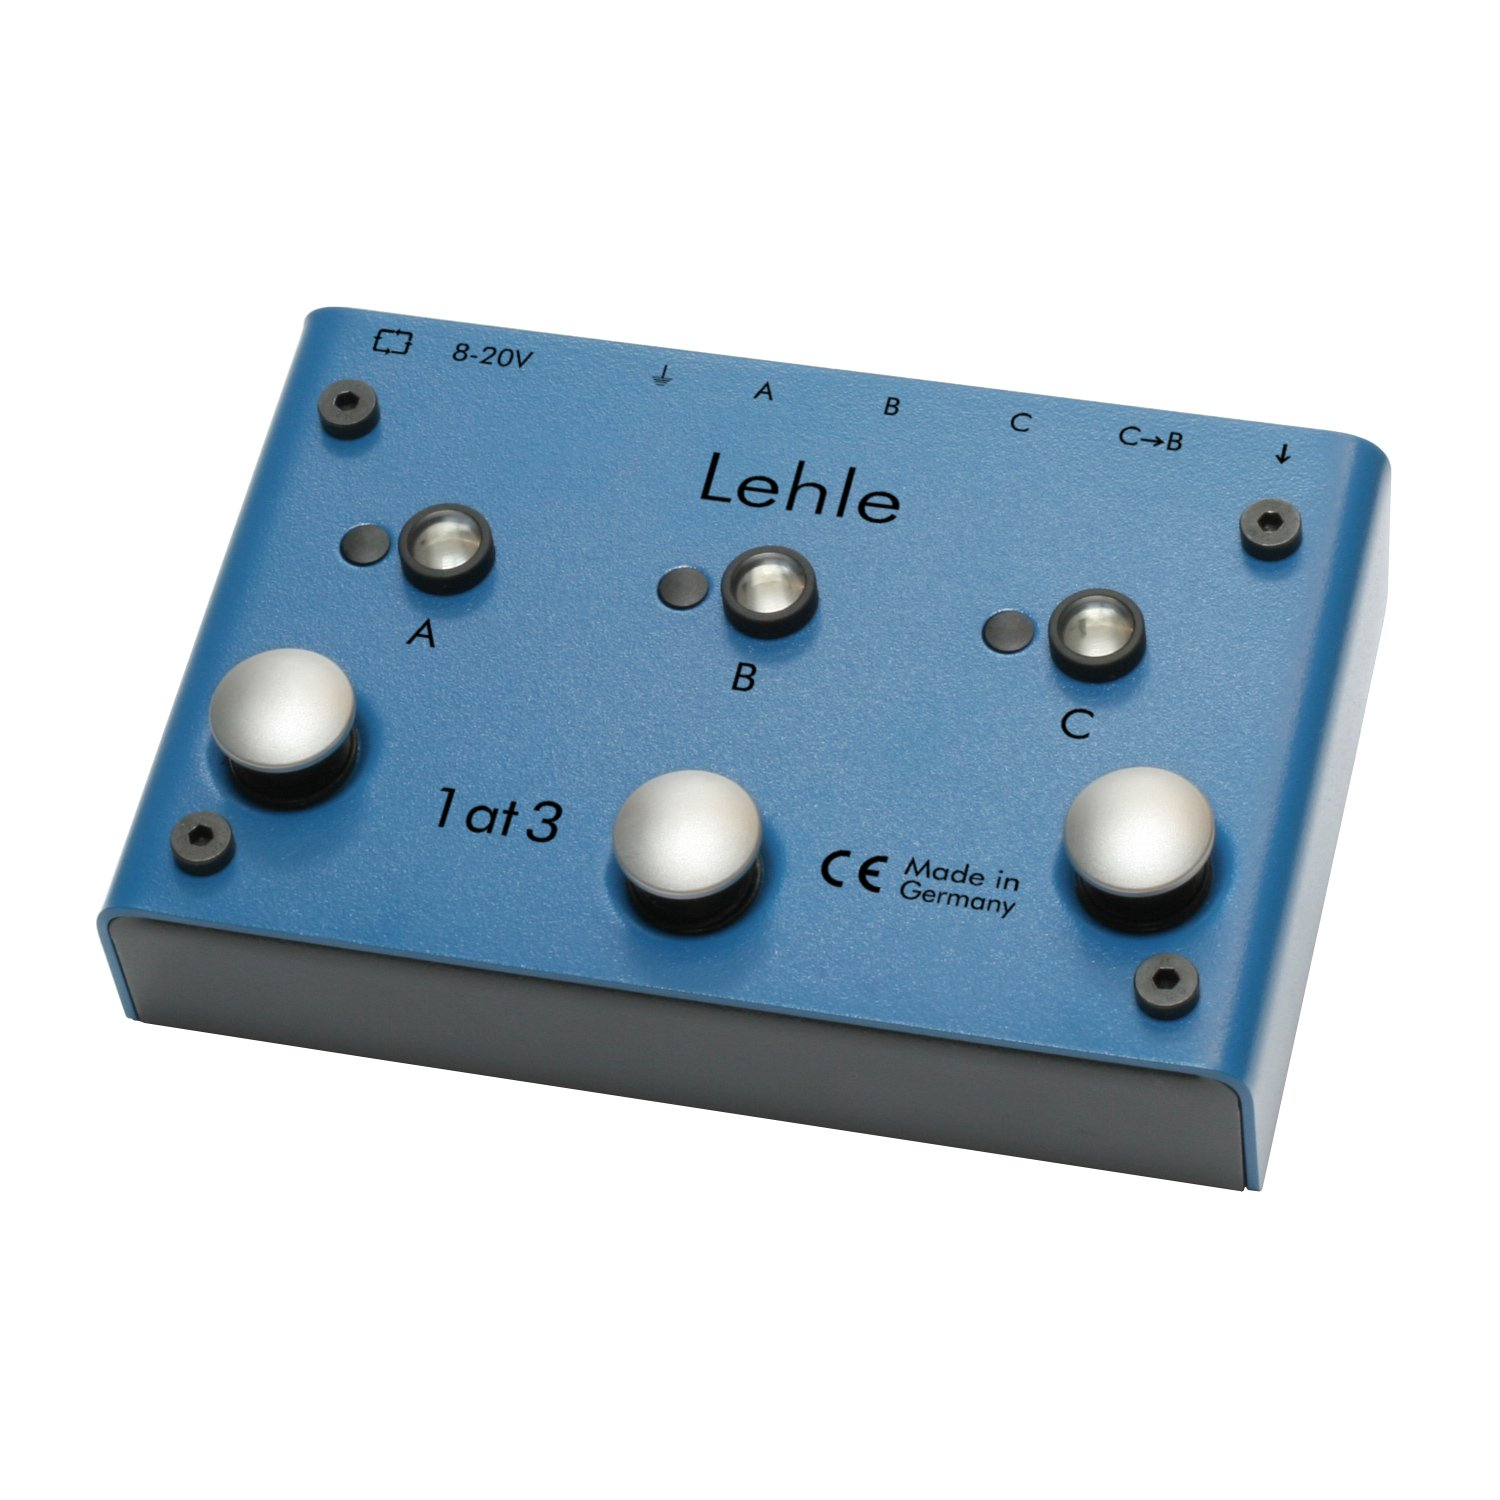 Lehle 1at3 SGoS Switch Pedal